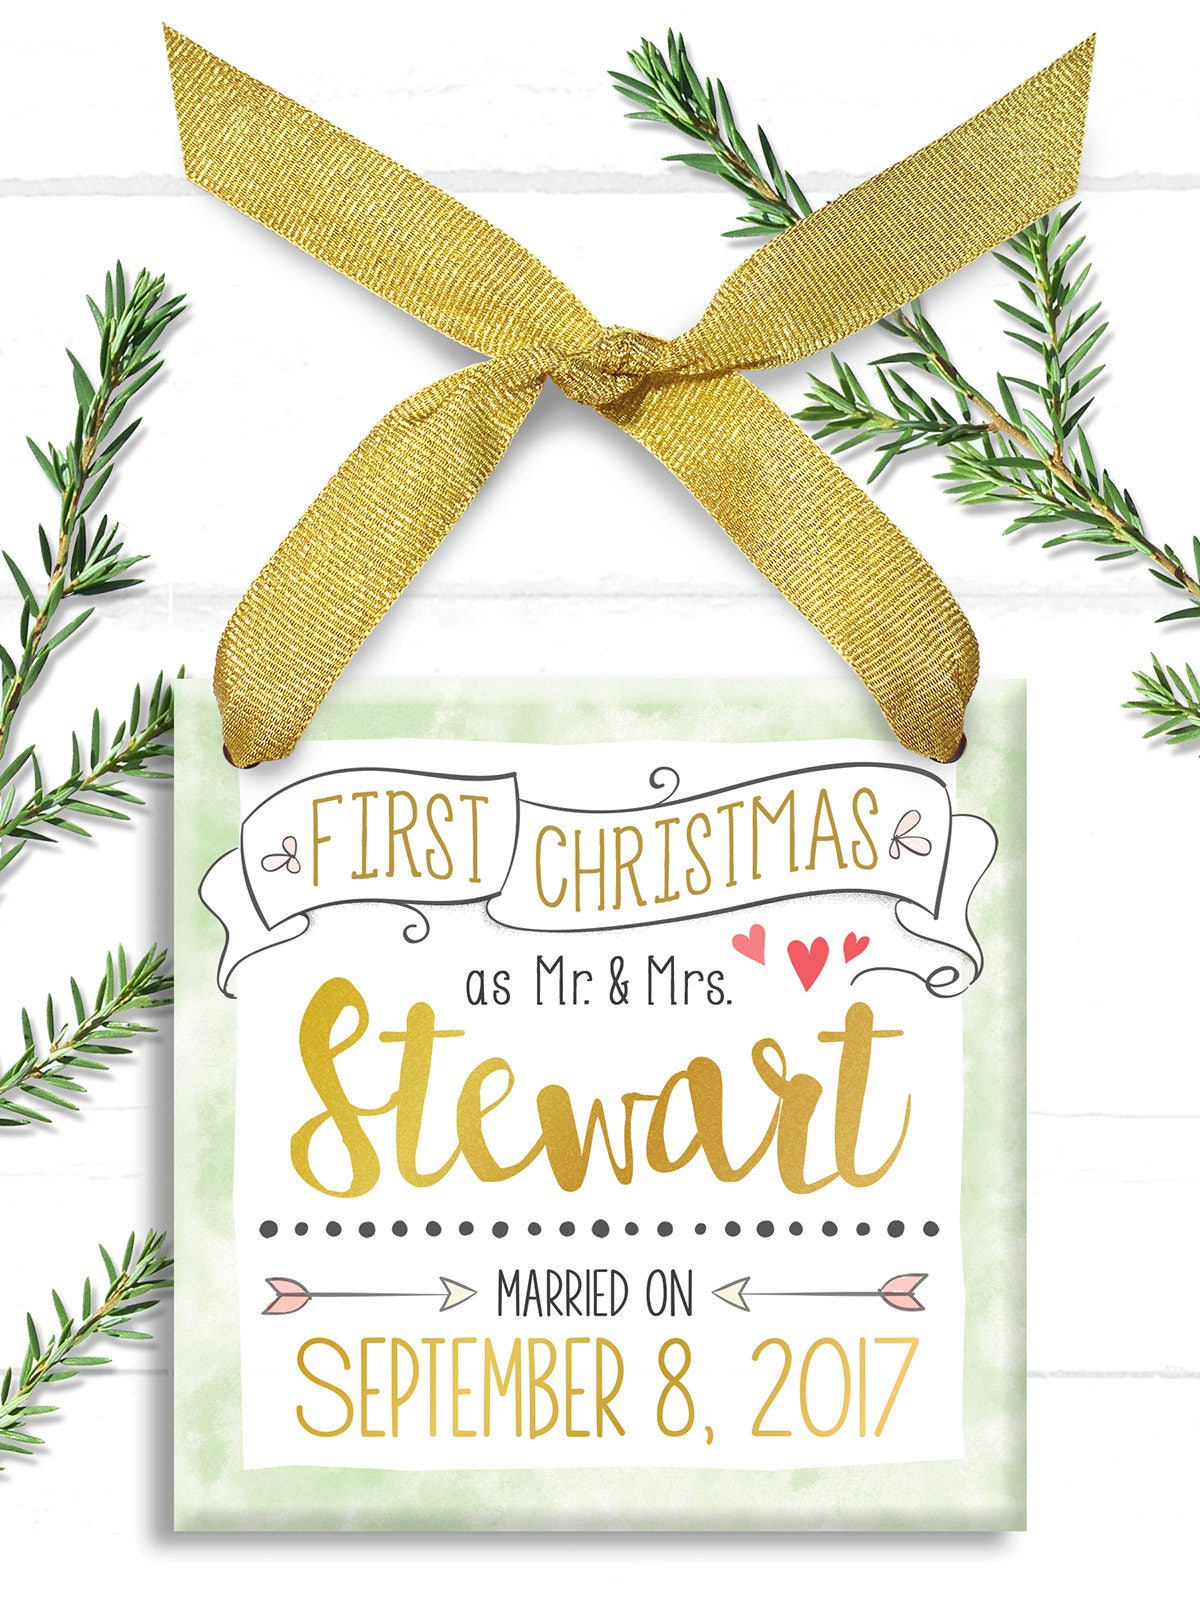 Our First Christmas as Mr and Mrs - Our First Christmas Ornament ...